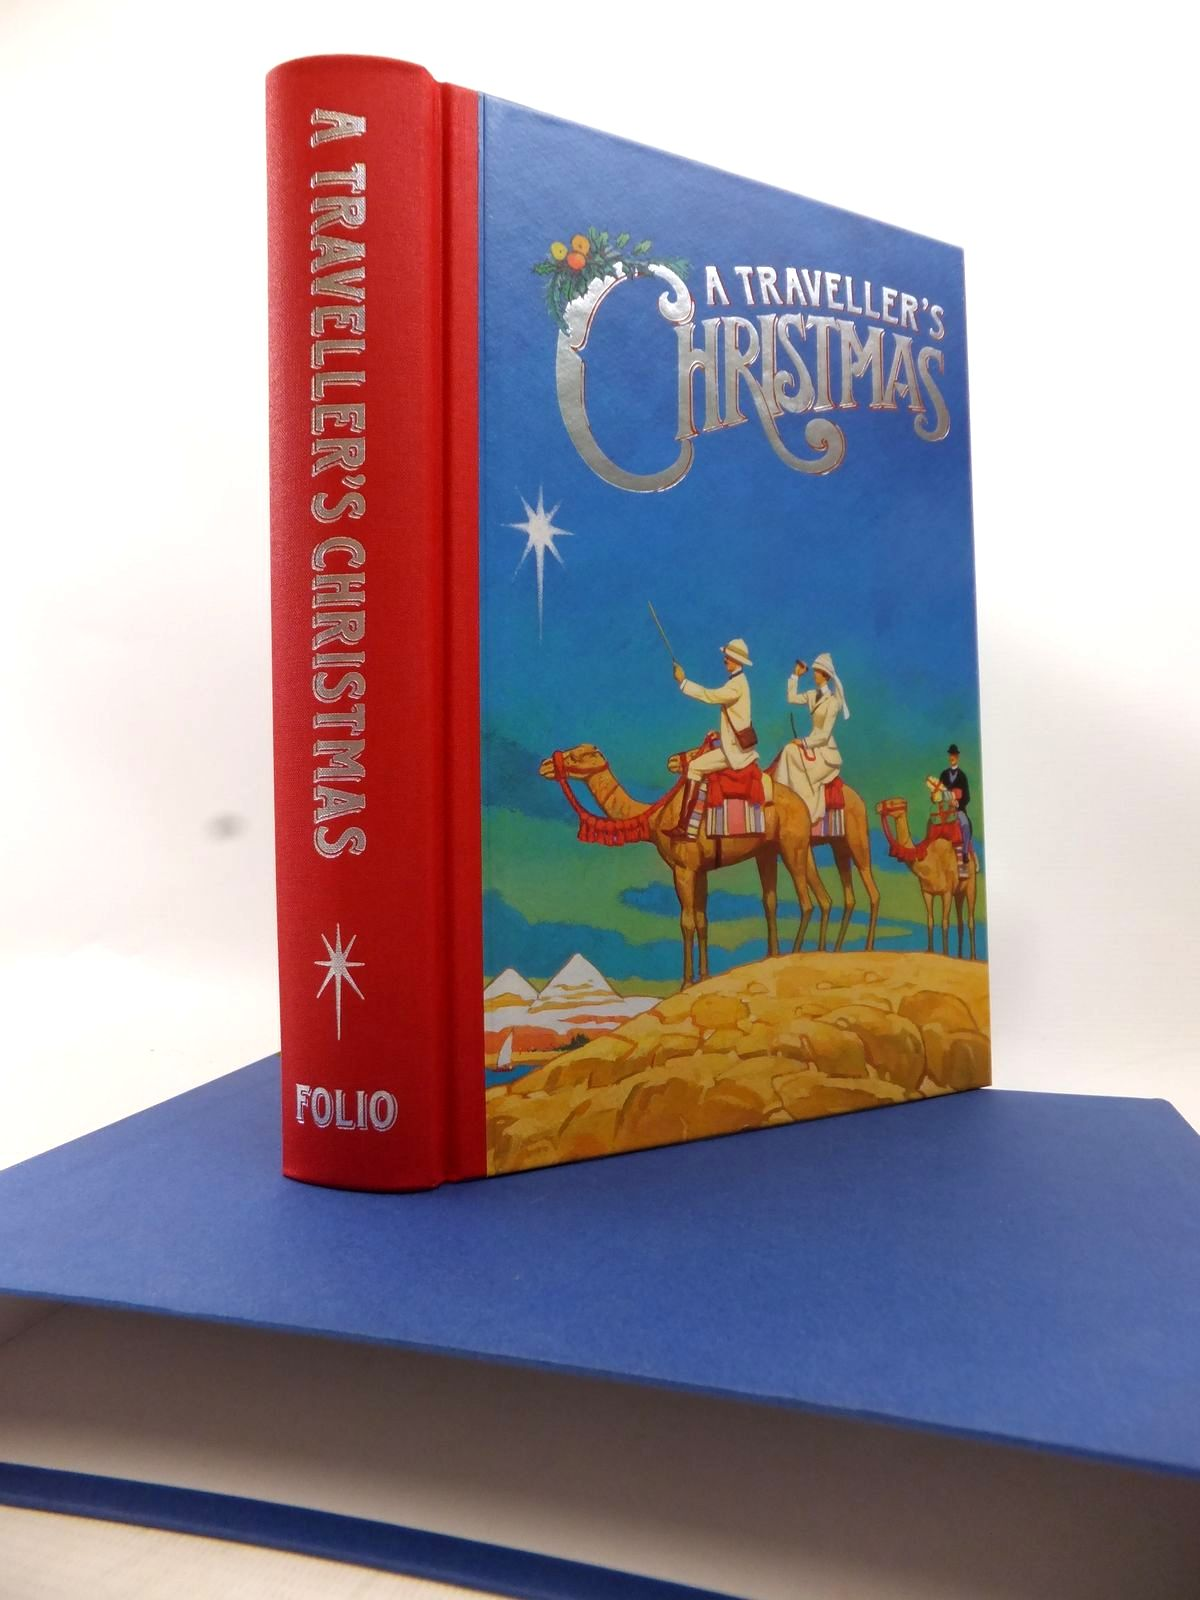 Photo of A TRAVELLER'S CHRISTMAS written by Bradbury, Sue illustrated by Slater, Paul published by Folio Society (STOCK CODE: 1813946)  for sale by Stella & Rose's Books